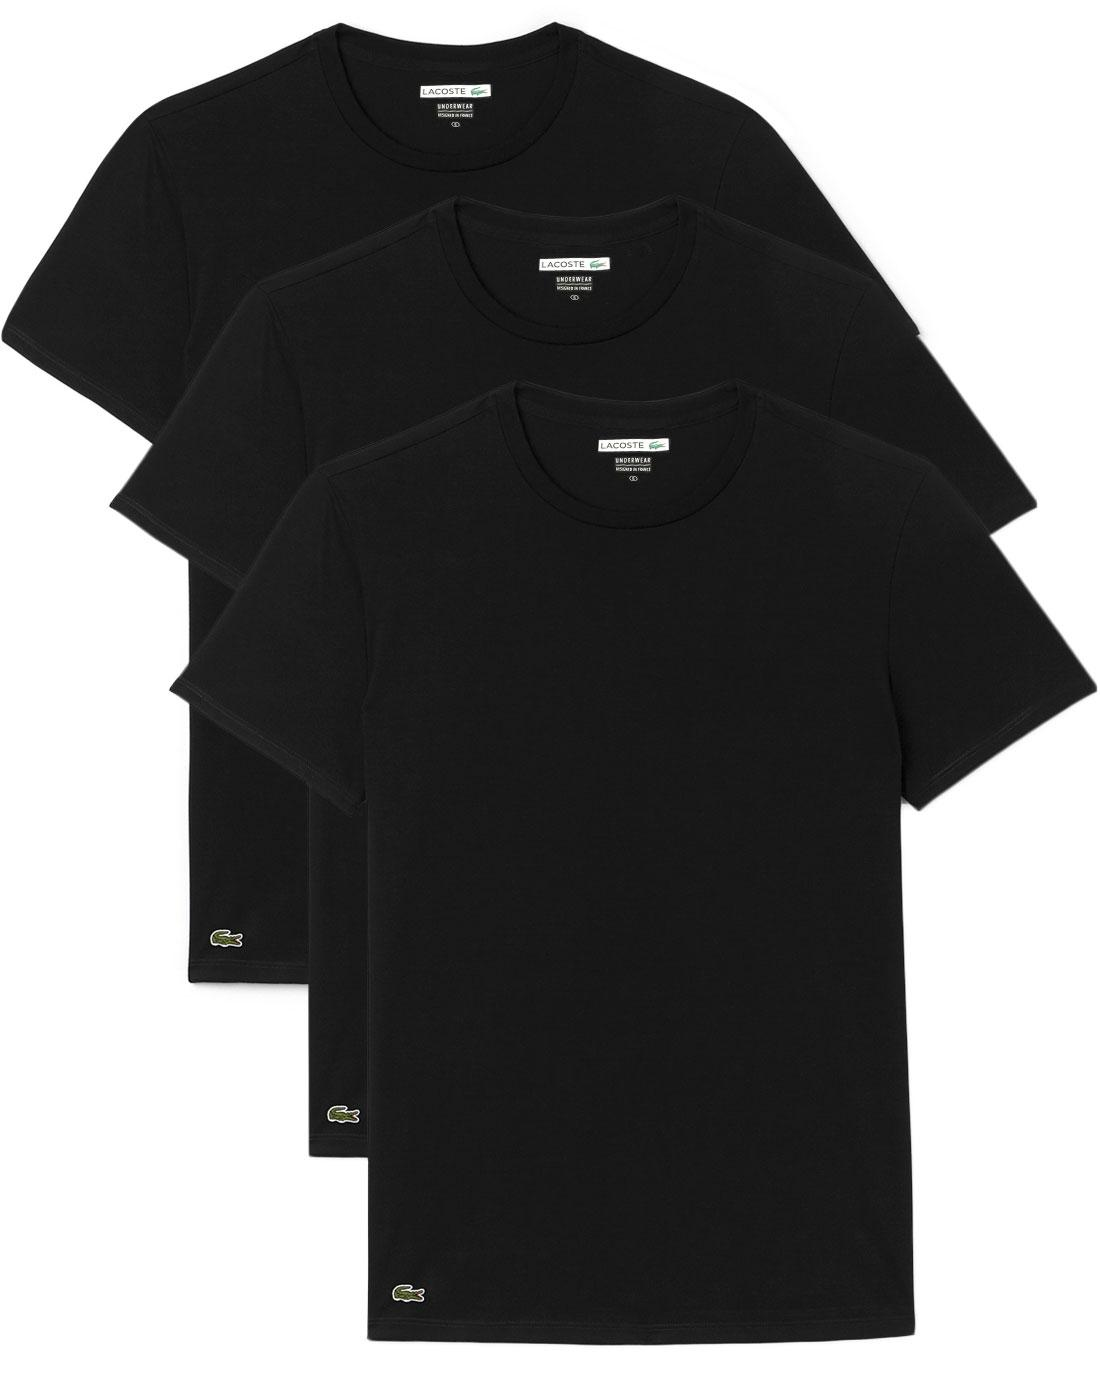 LACOSTE Men's 3 Pack Crew Neck T-Shirt - BLACK